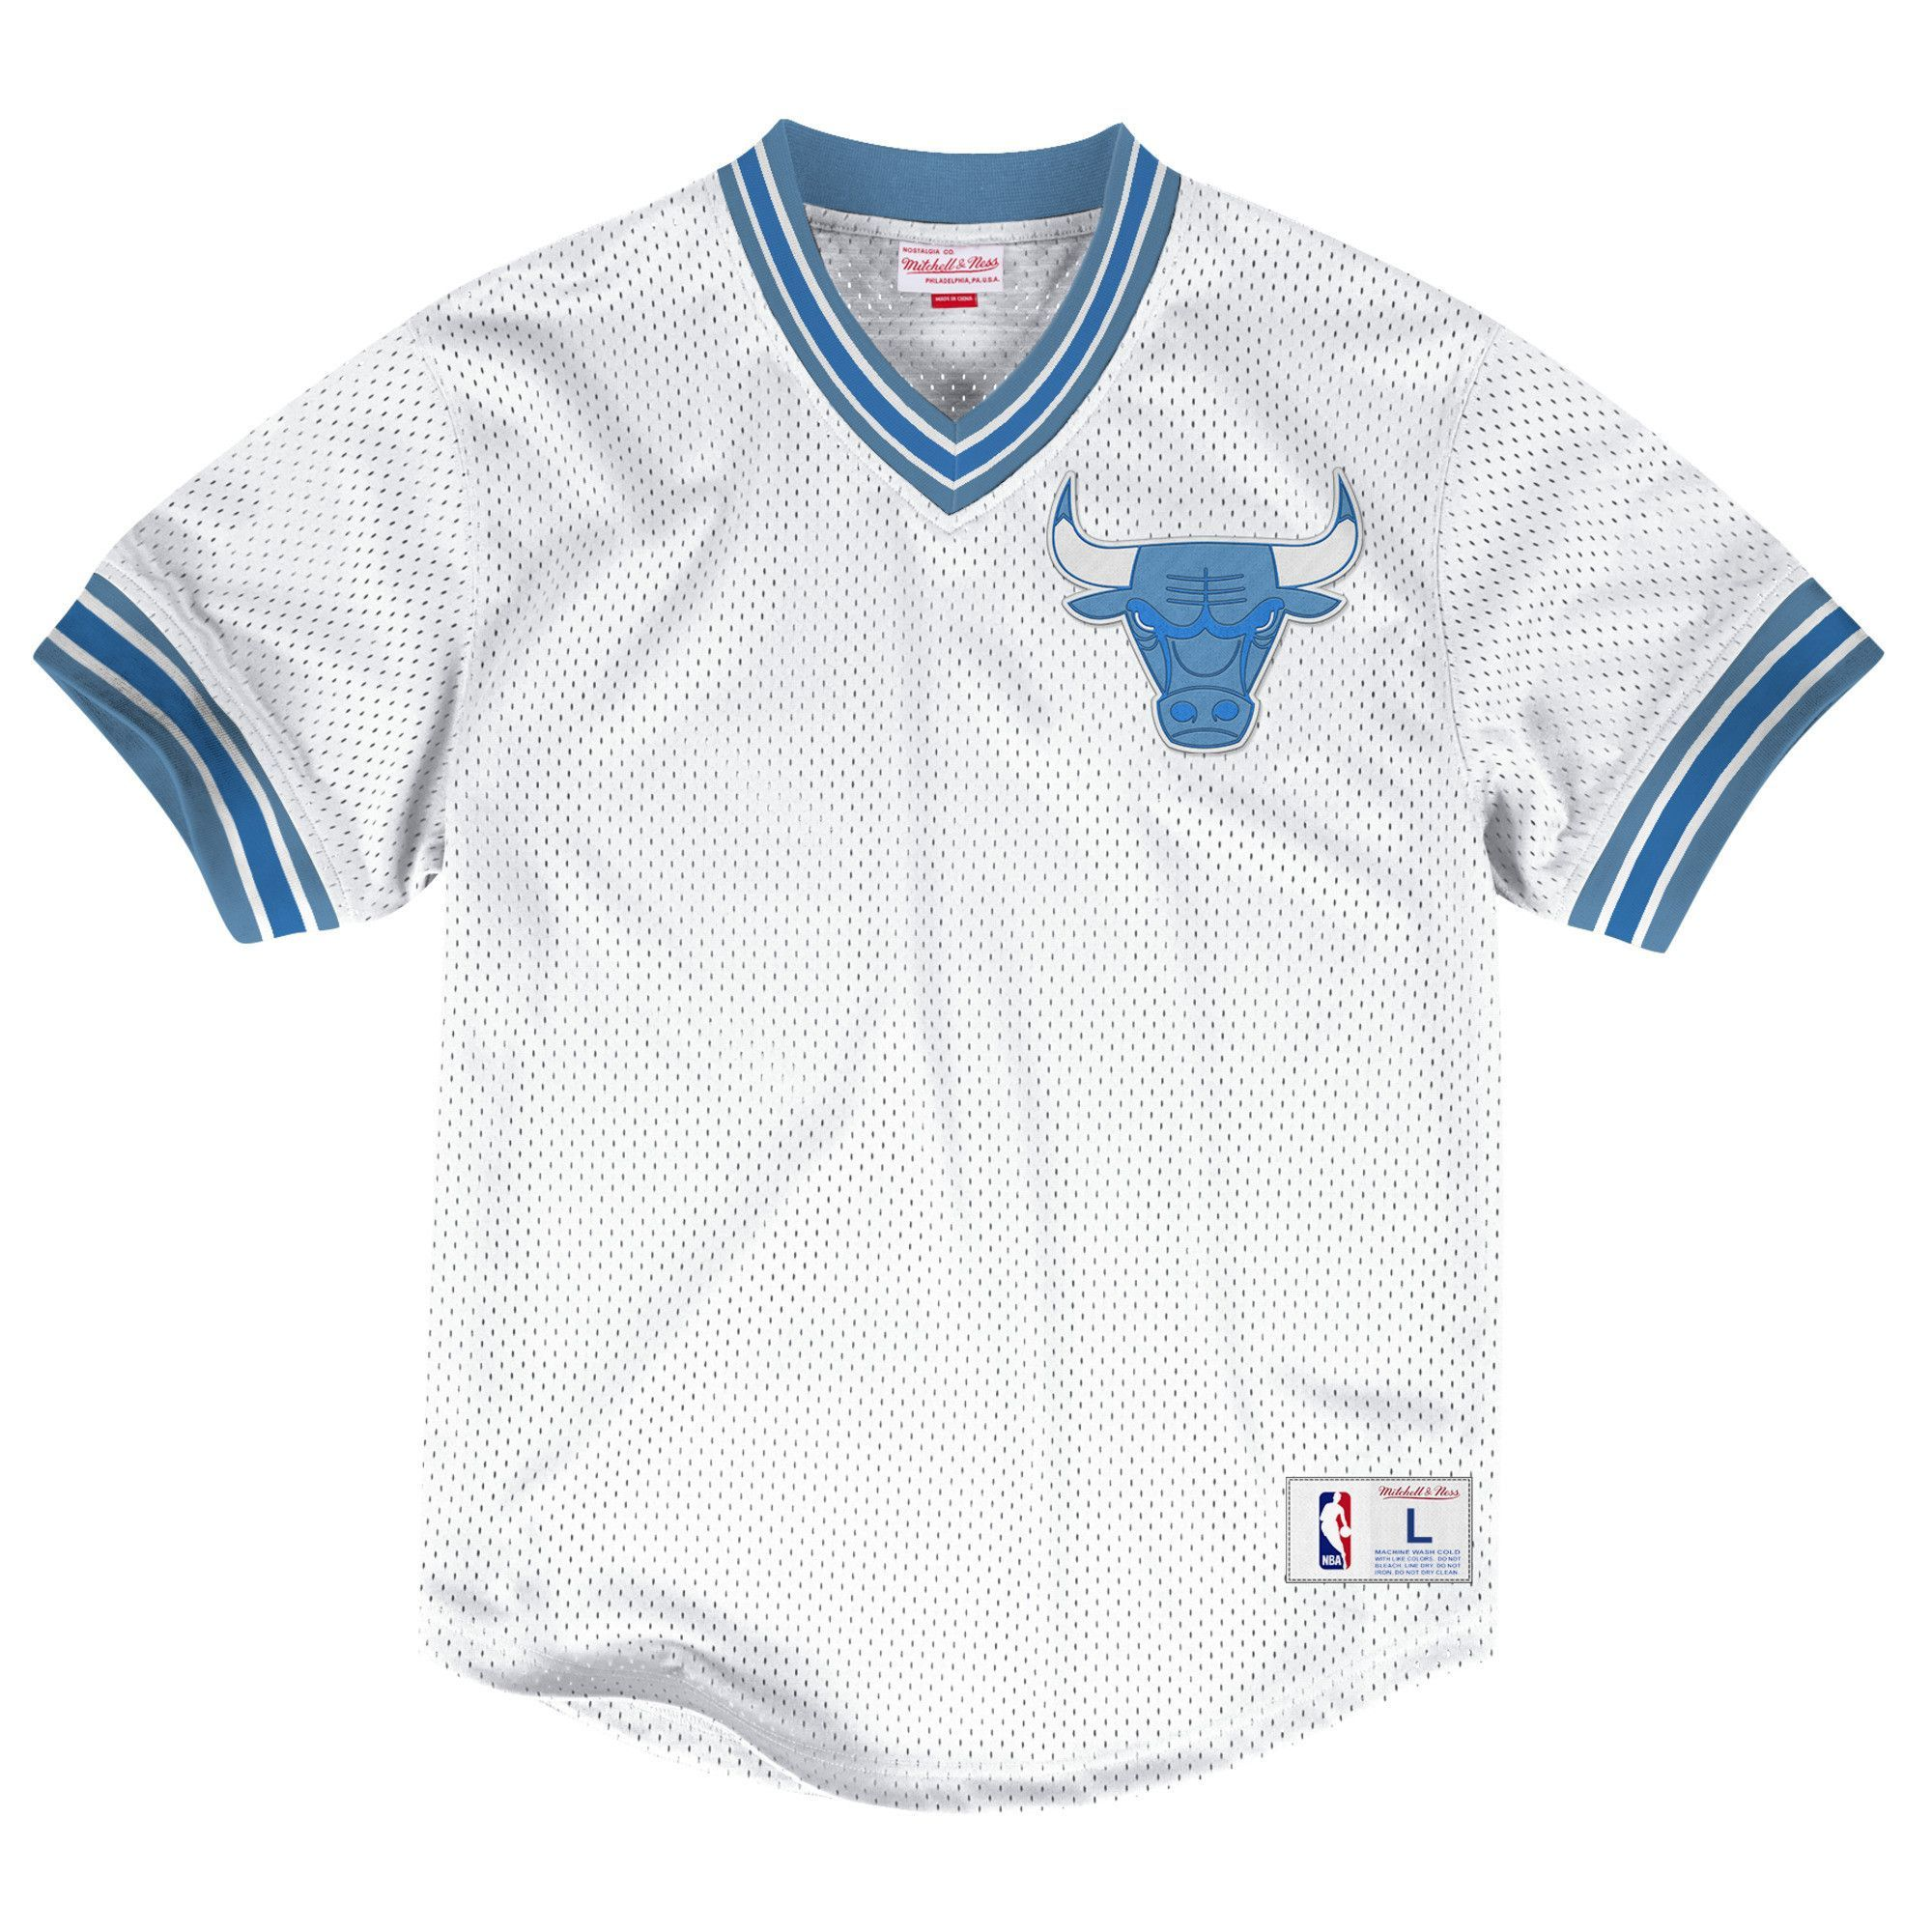 save off 5b3a0 e6d1f MEN'S CHICAGO BULLS MITCHELL & NESS LIGHT BLUE/WHITE MESH V ...